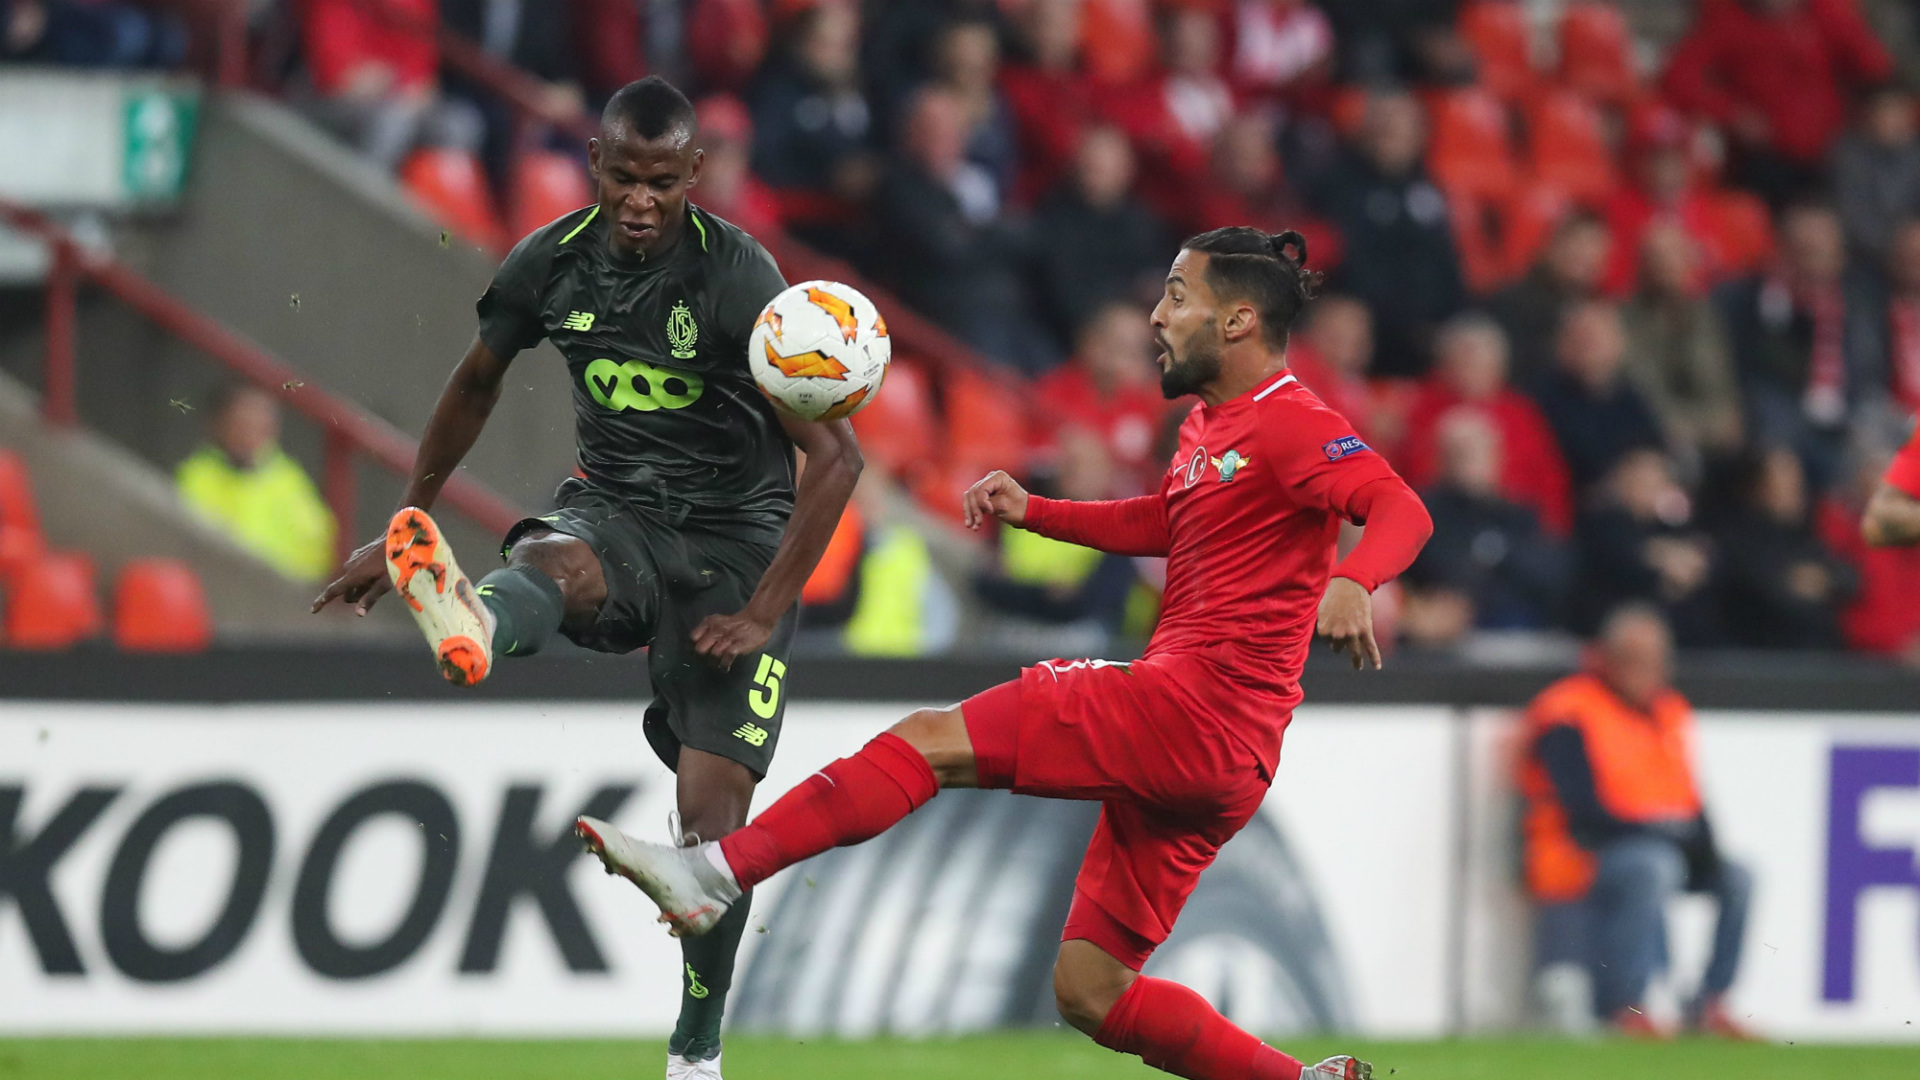 Uche Agbo: Confident Sporting Braga midfielder hails his experiences in Spain and Belgium